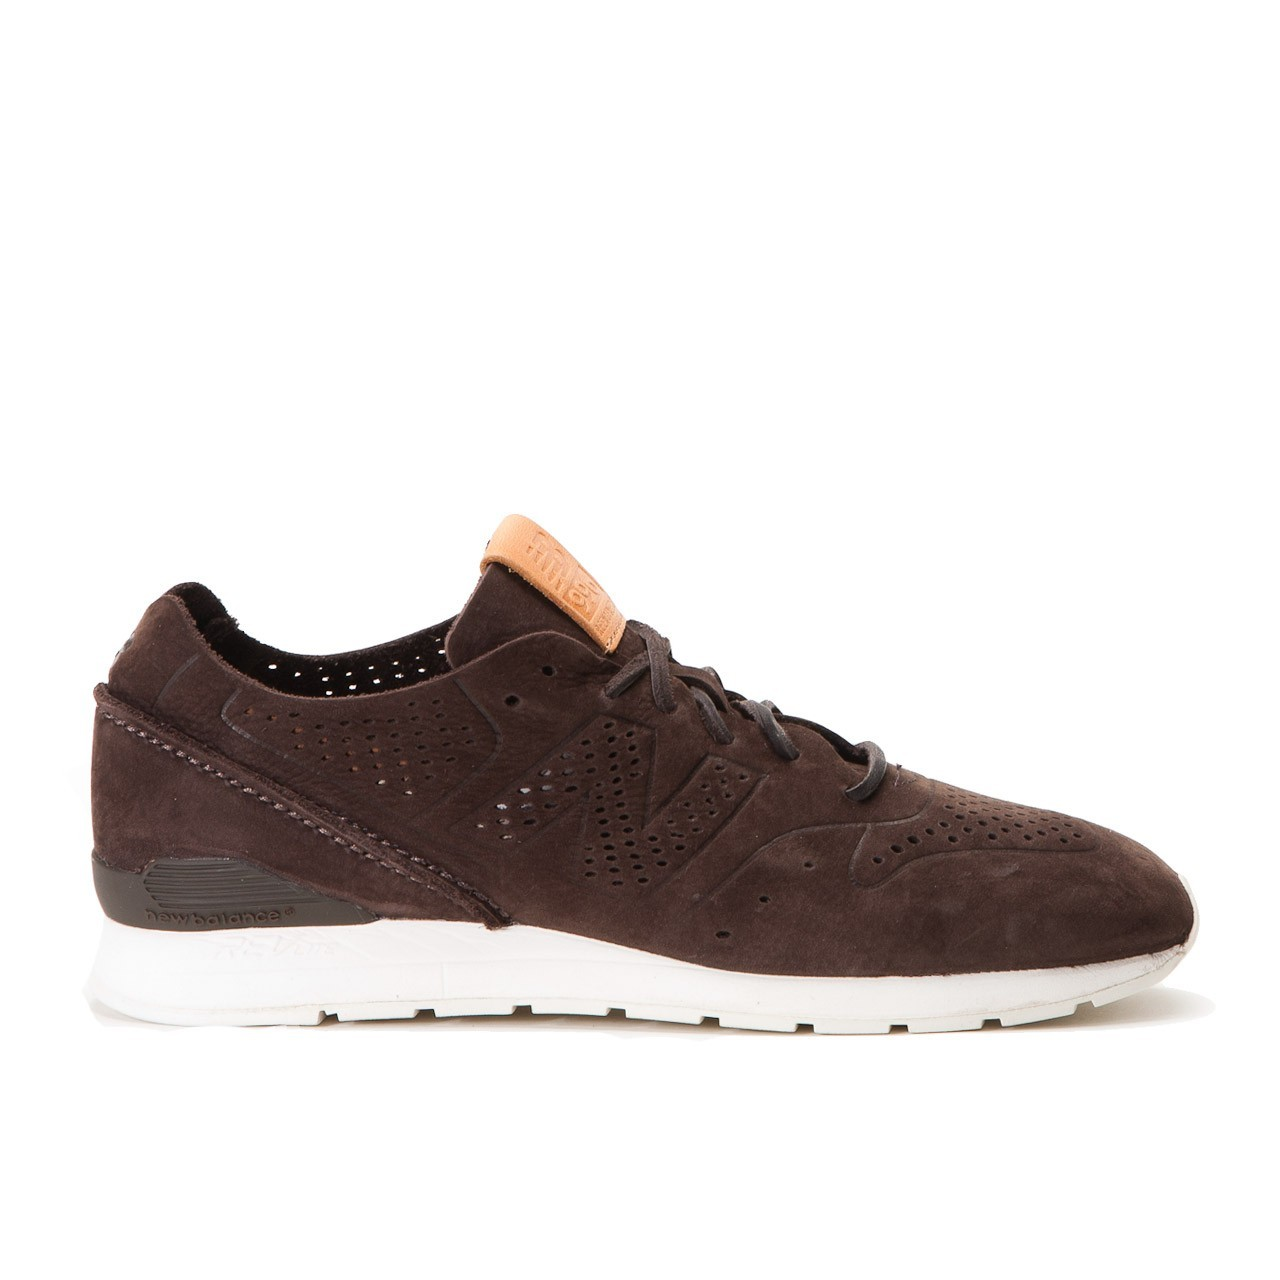 "New Balance MRL 996 DA Reengineered ""Deconstructed Pack"" Mens Runner Trainers Dark Brown"